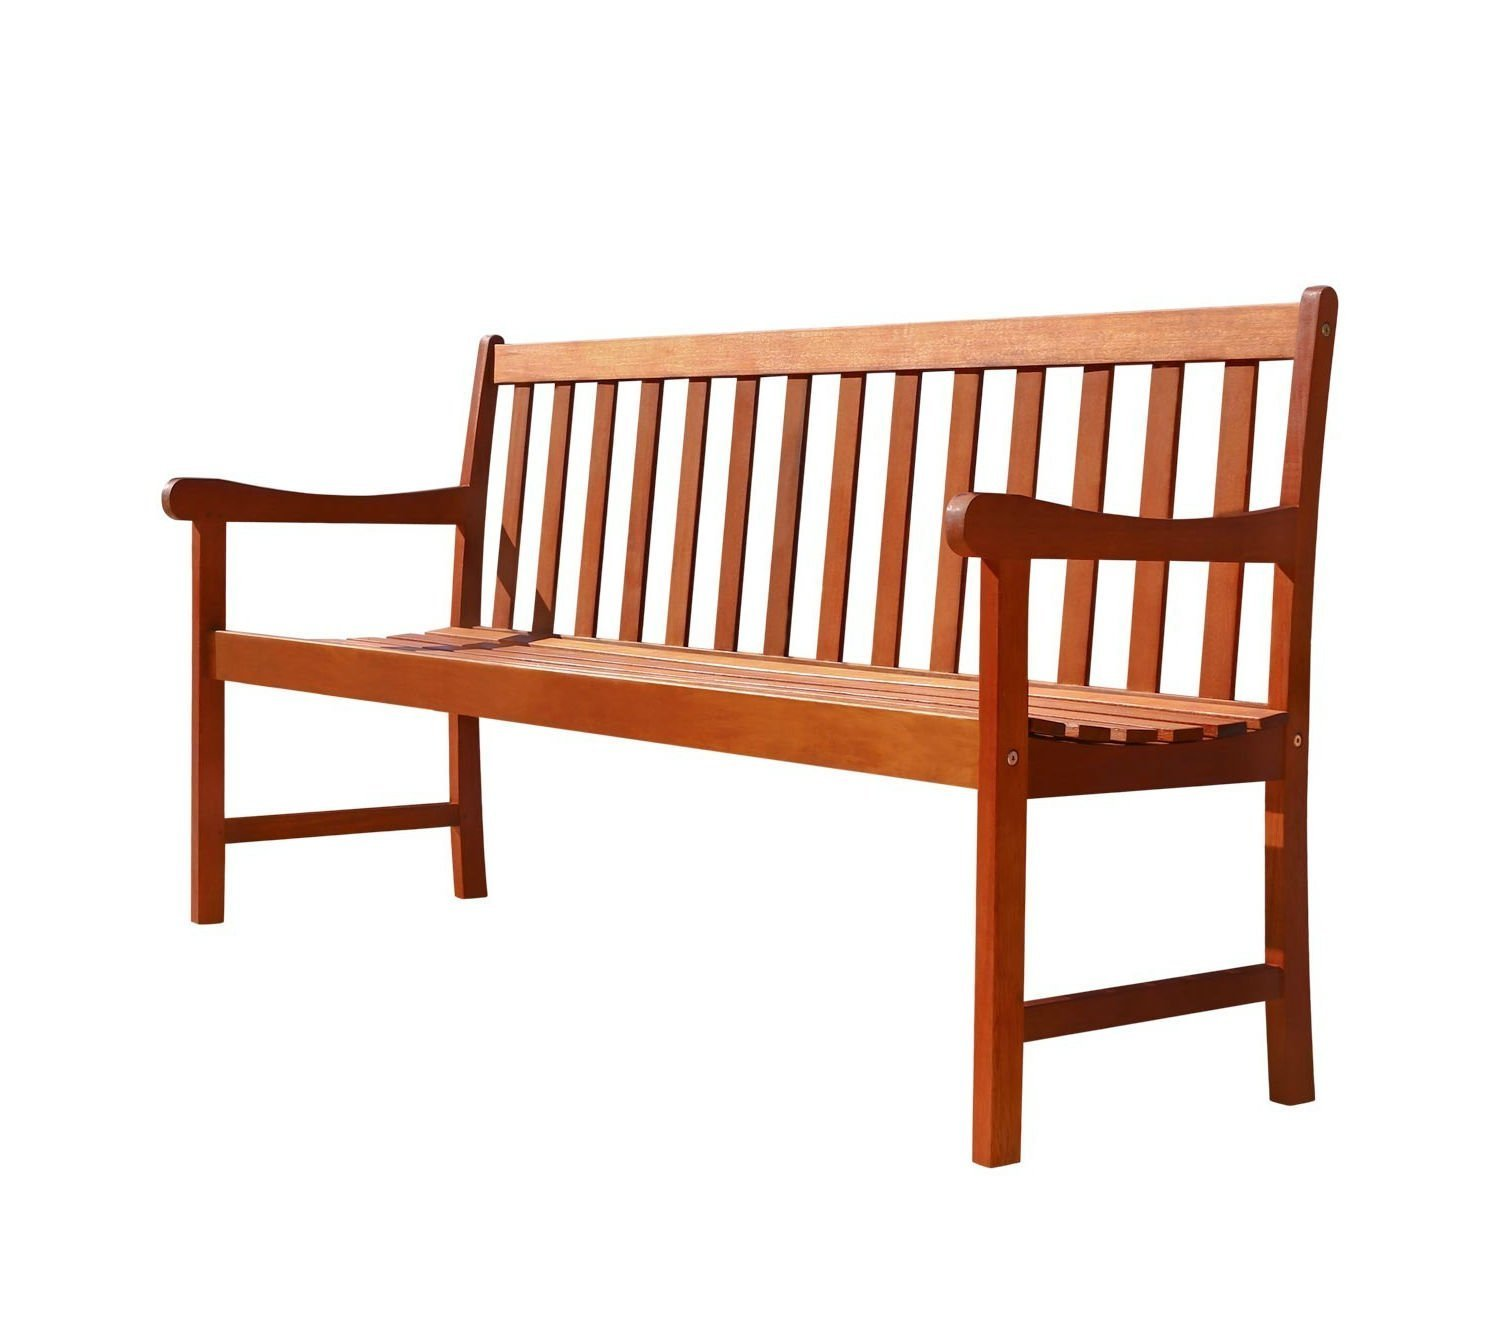 This Teak Outdoor Bench is 5 ft and a 2 seater, made from a Elegant Eucalyptus wood. Features a Rustic Look with Natural Finish. Perfect poolside, in garden, porch, yard, patio or outside living space